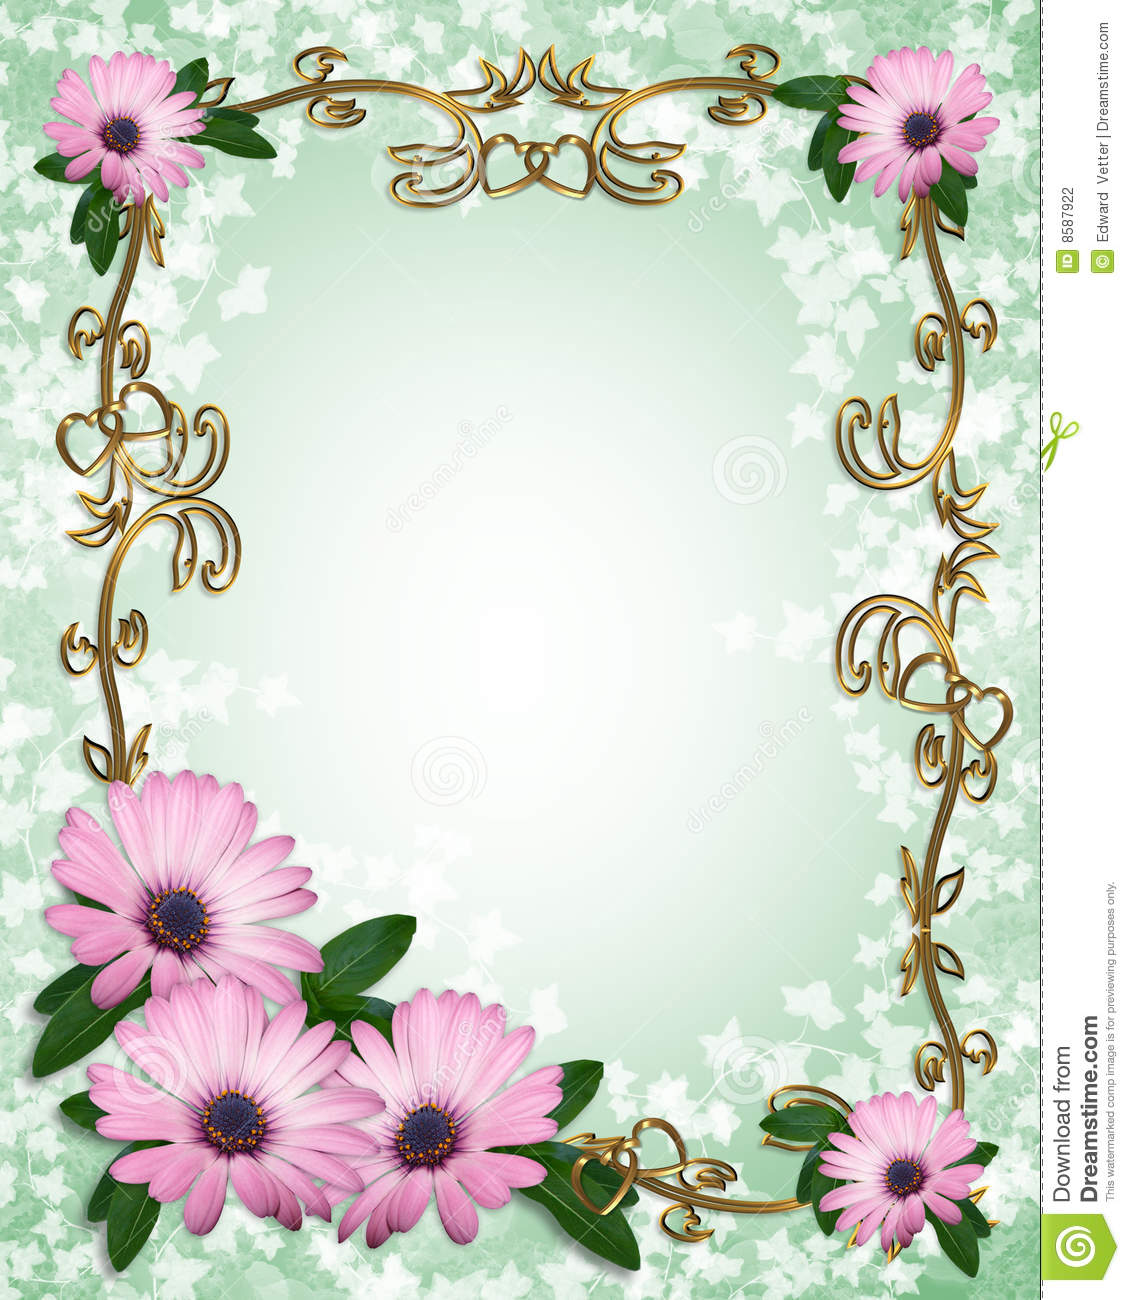 Daisy Border Template Stock Photography Image 8587922